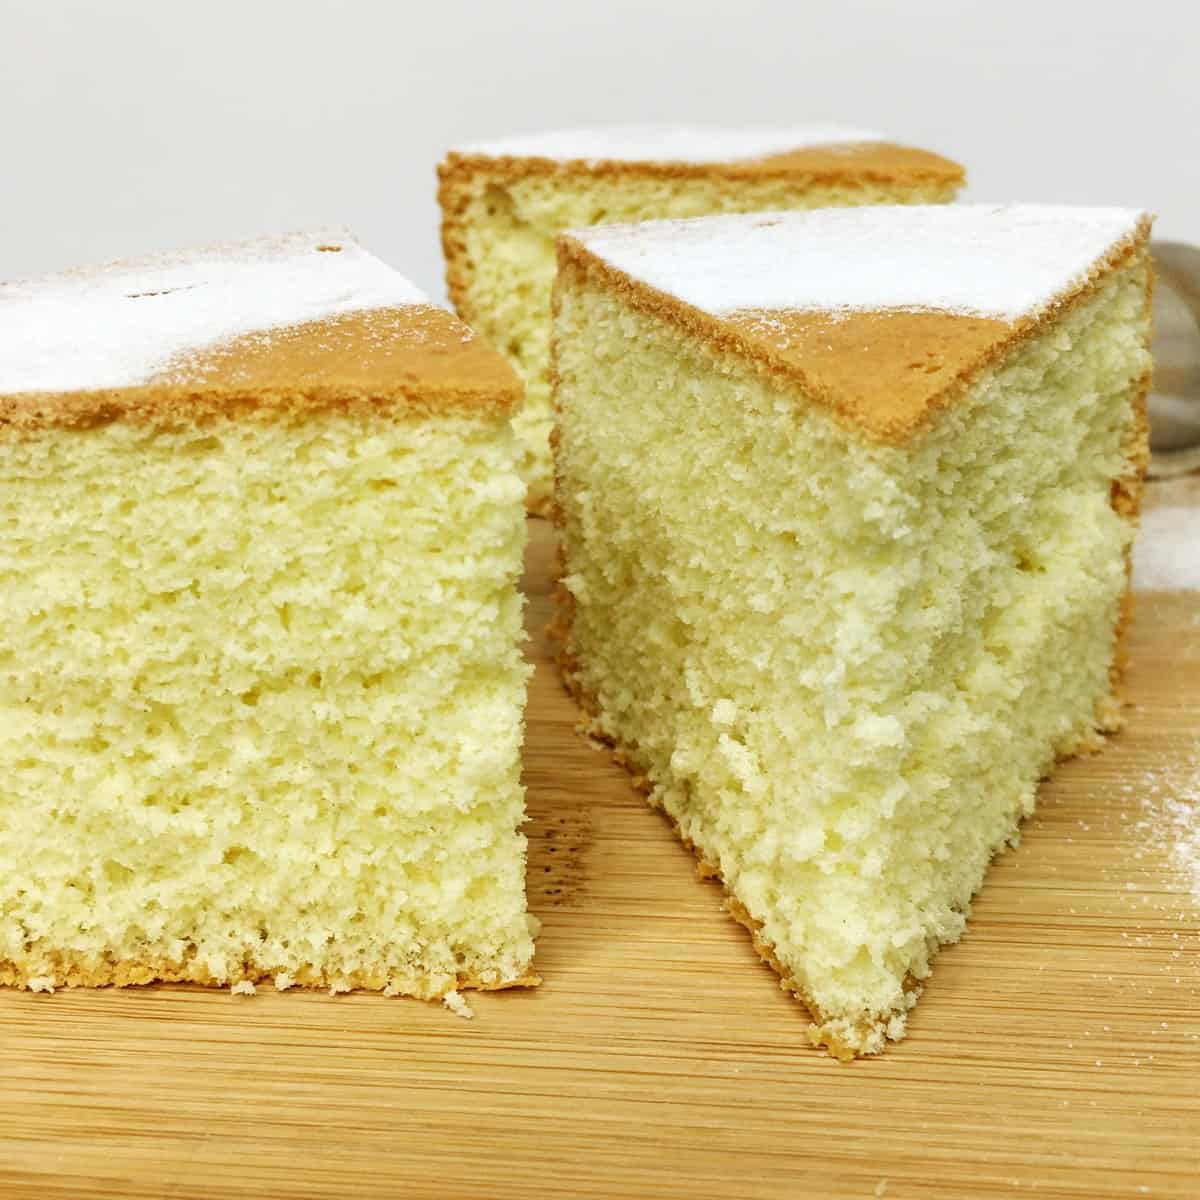 Three slices of sponge cake on a wooden board